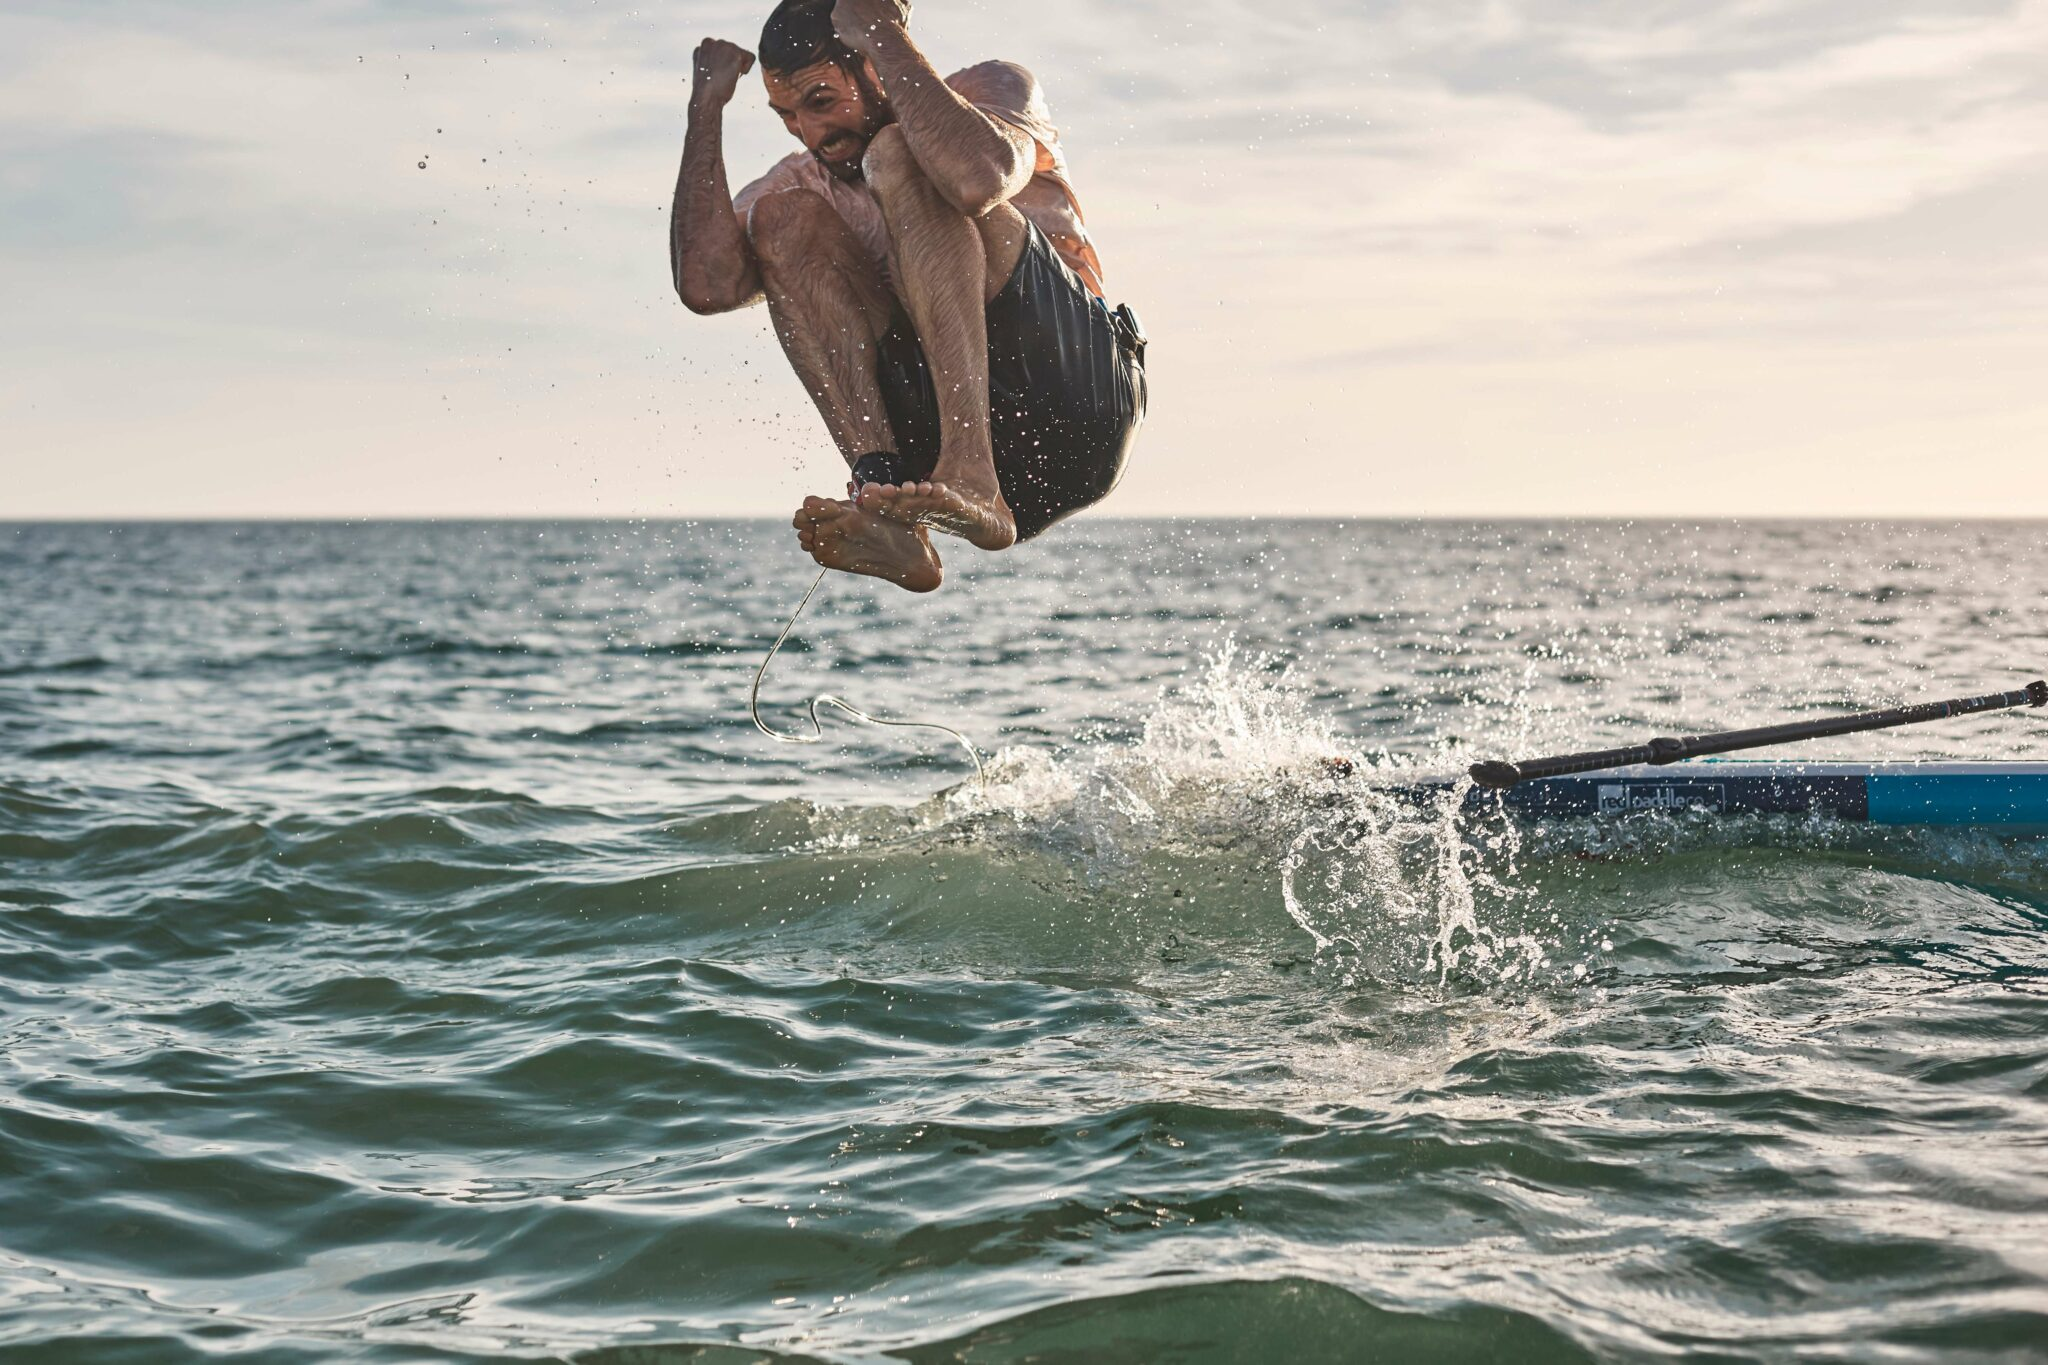 Person jumping into the ocean from their paddle board